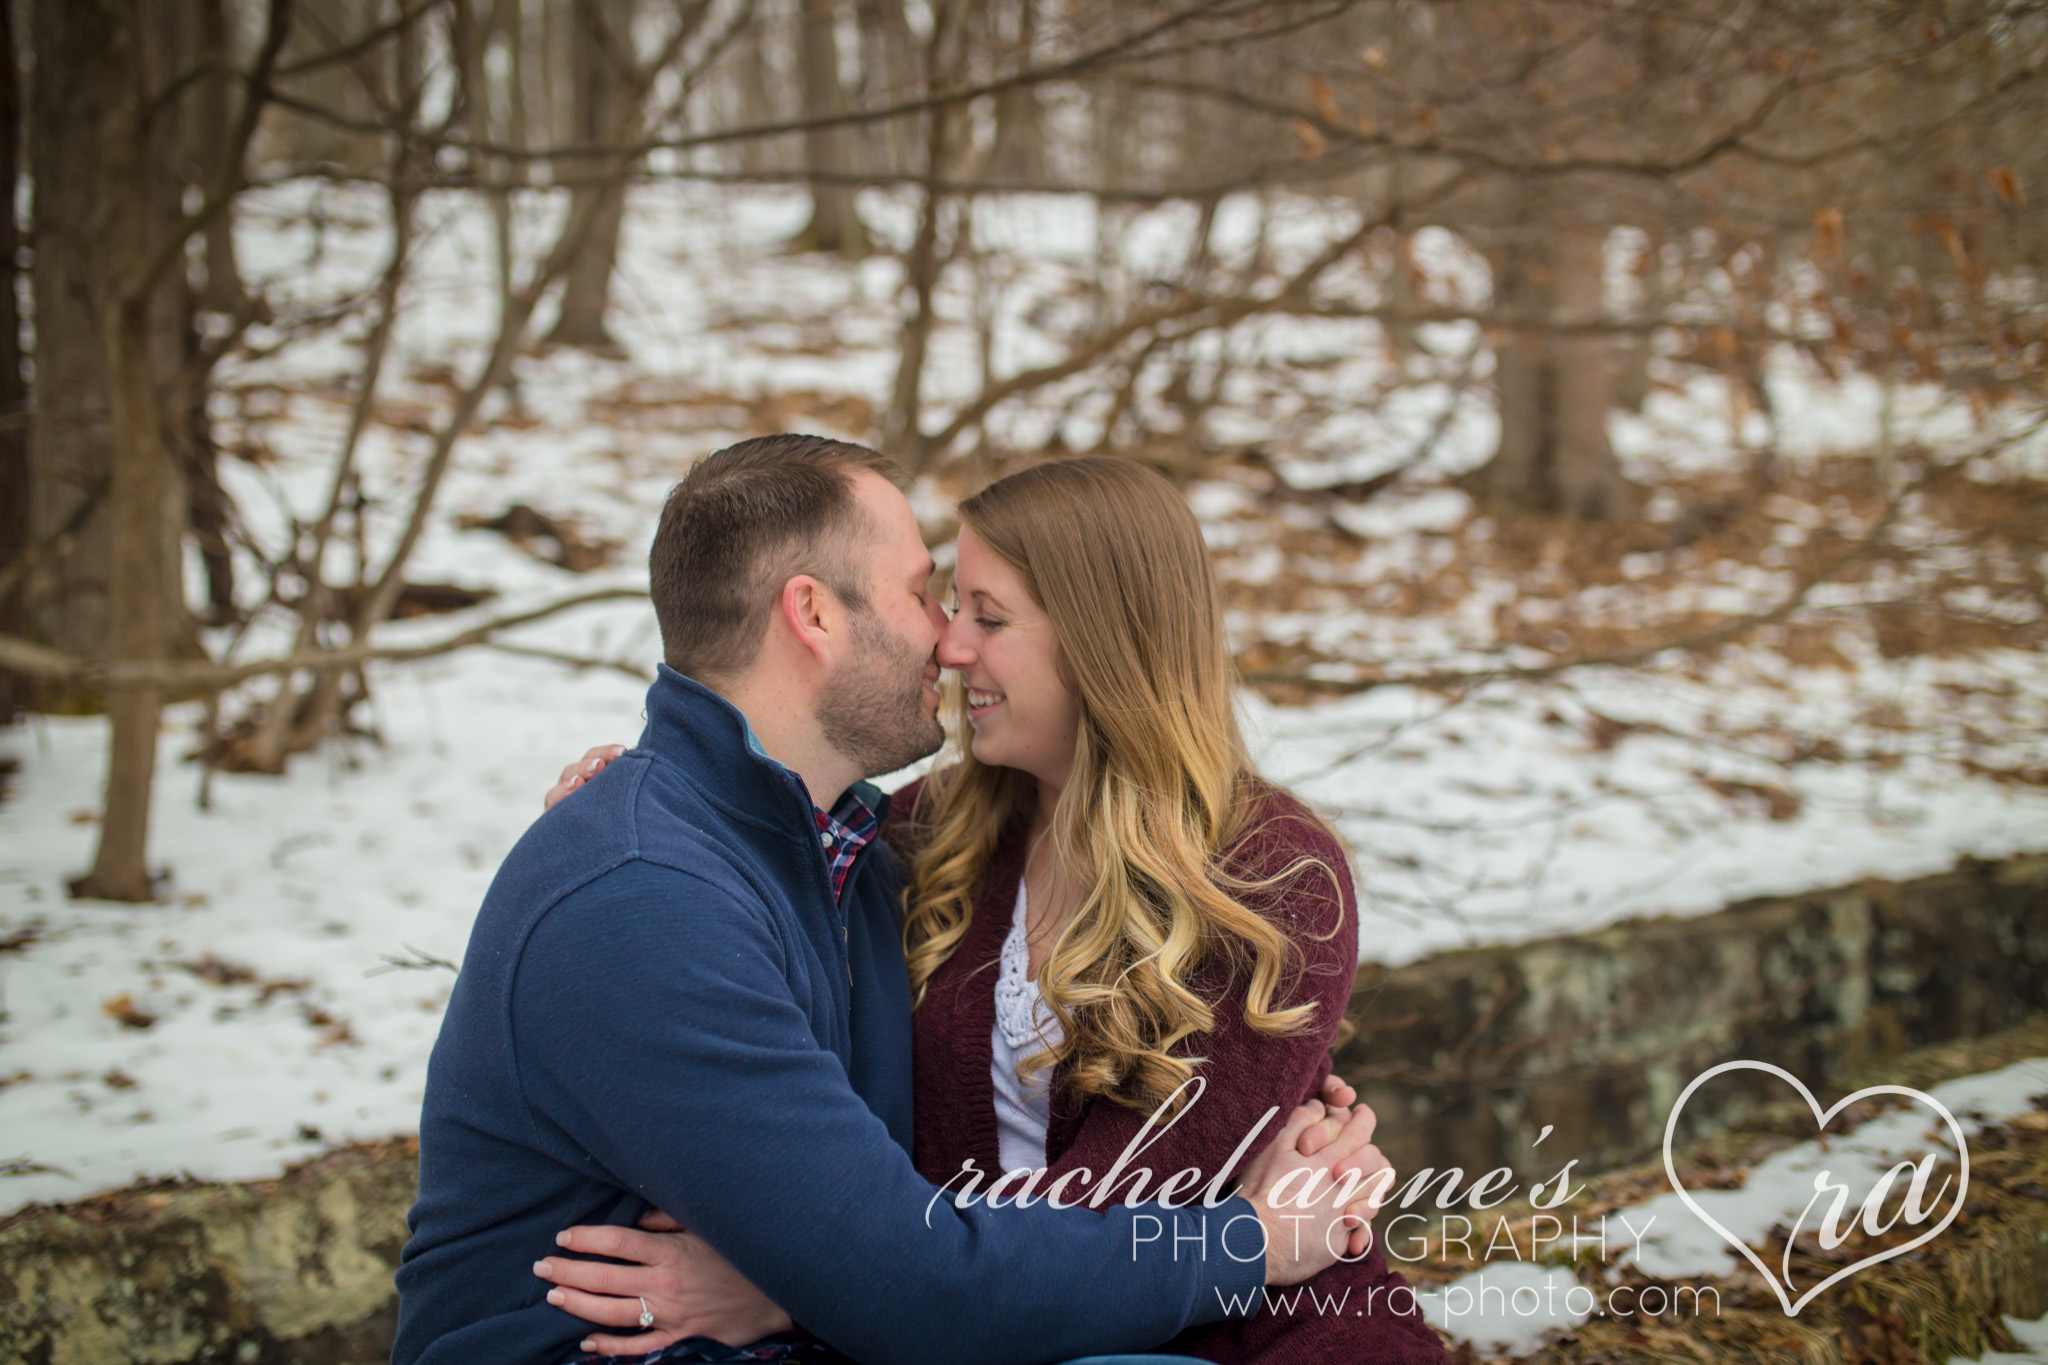 050-JKM-DUBOIS-PA-ENGAGEMENT-PHOTOGRAPHY.jpg